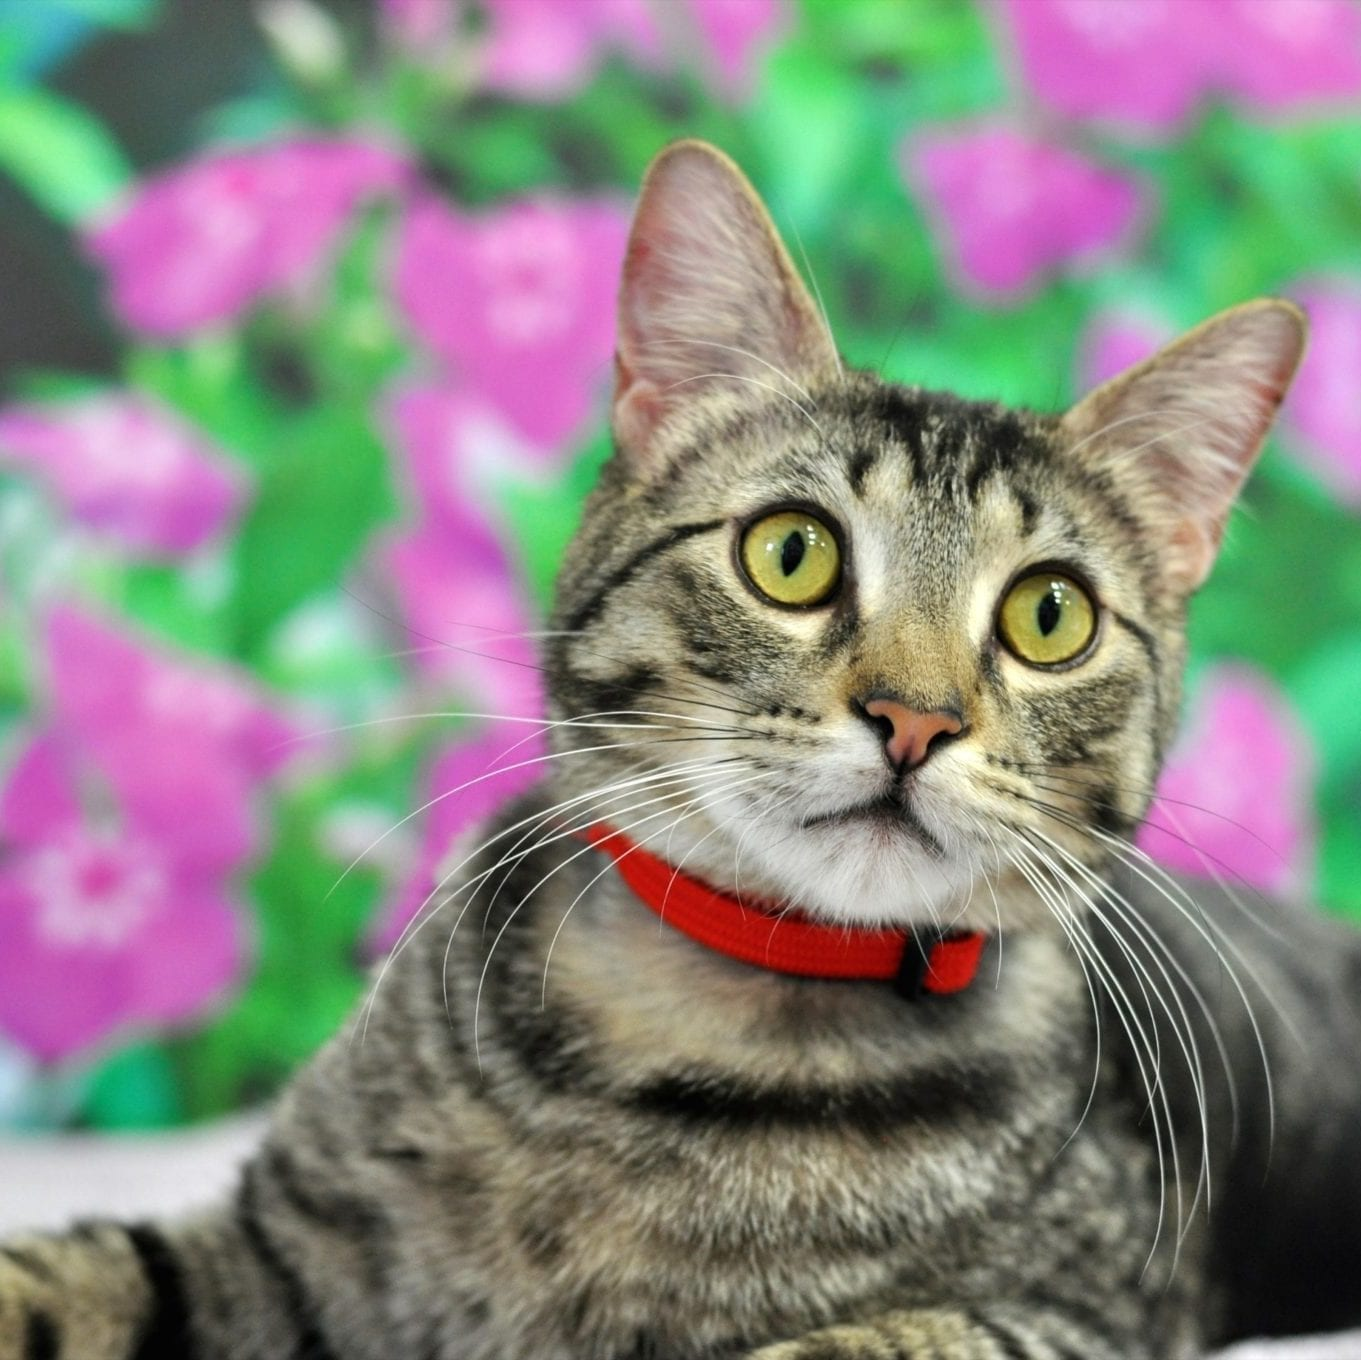 Feline Infectious Peritonitis Fip Friends For Life Animal Shelter